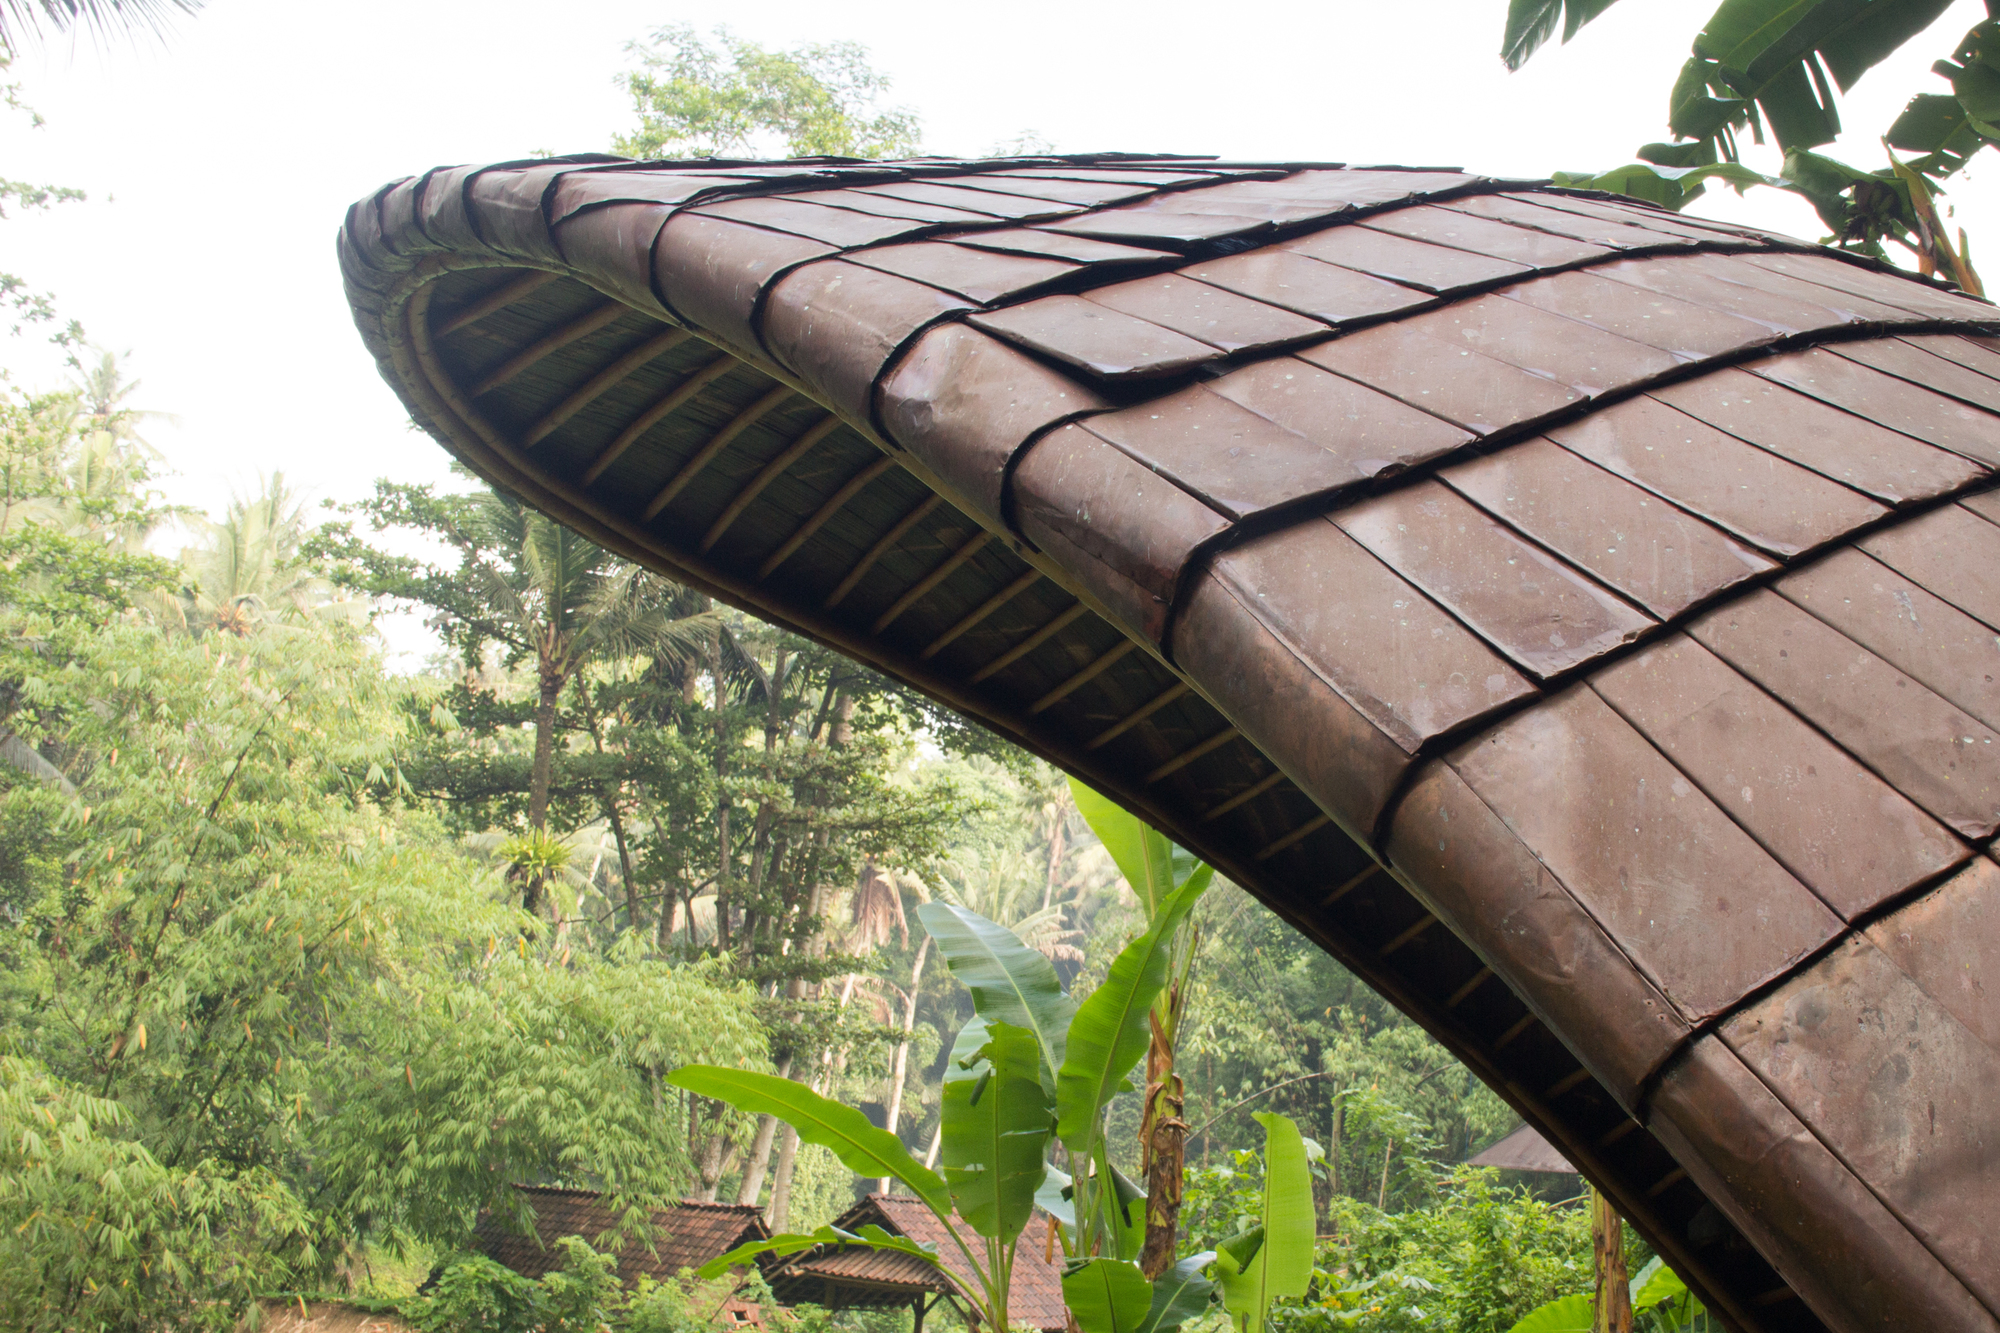 Roofing Systems for Bamboo Buildings